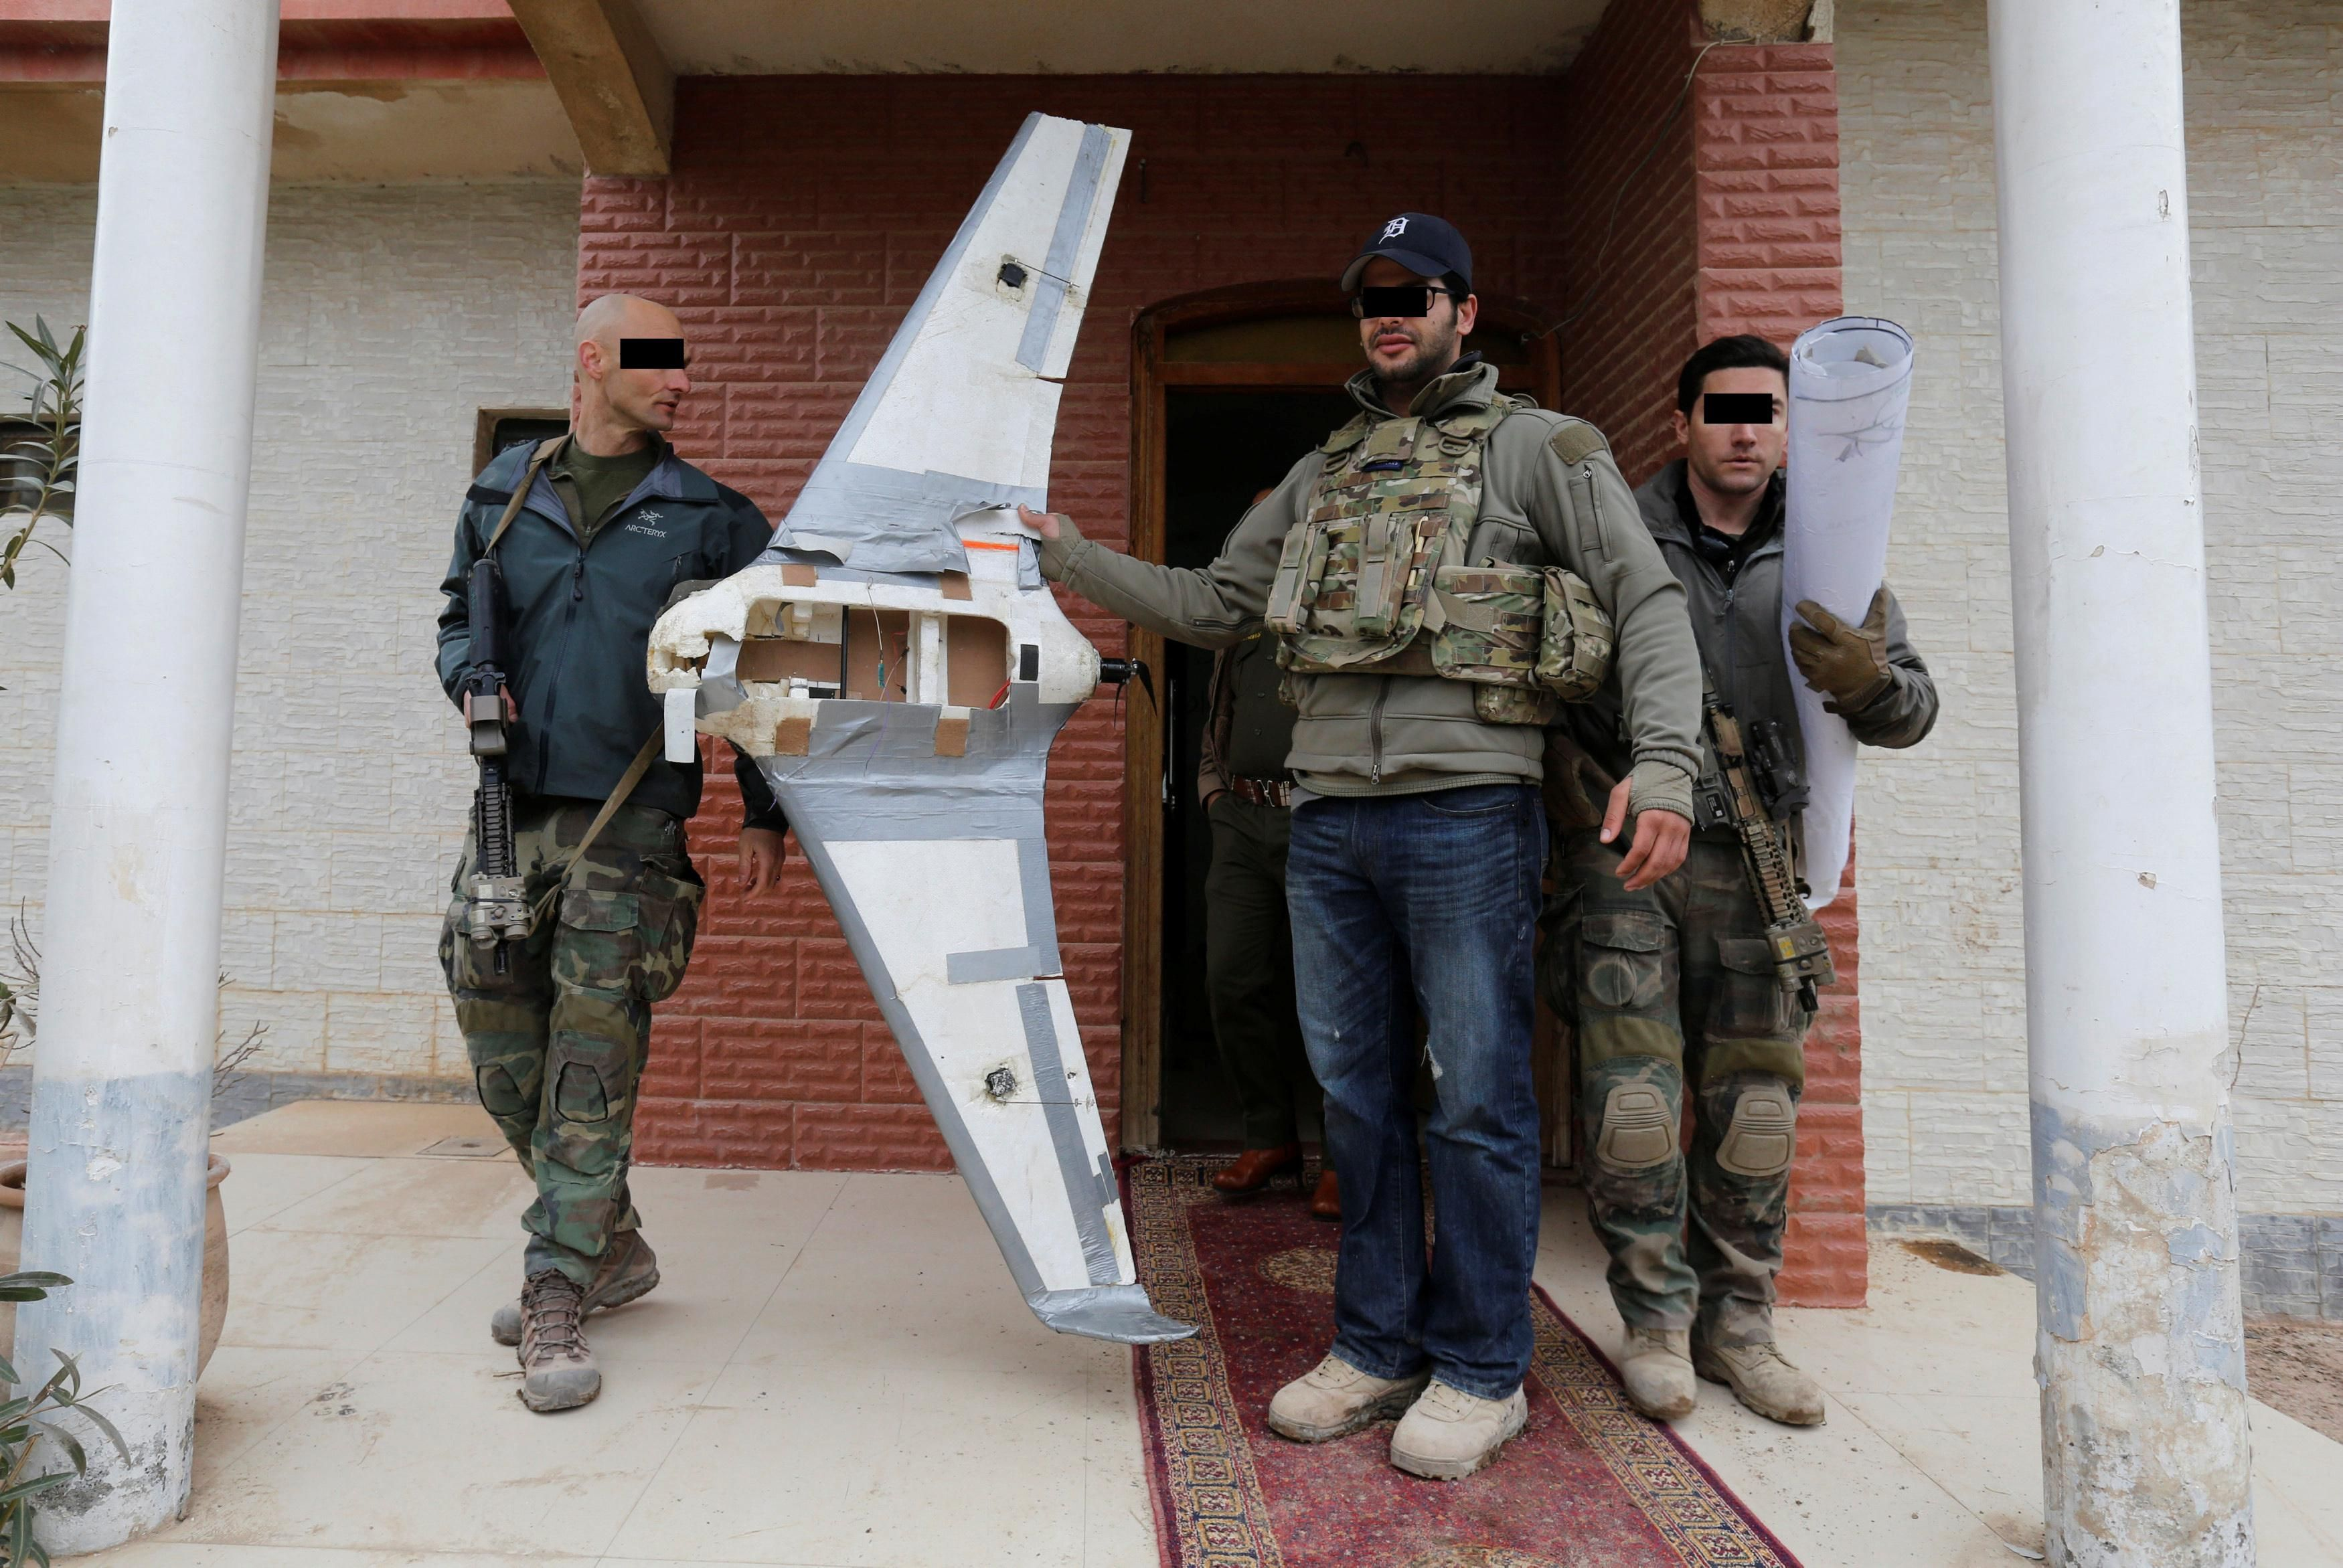 Marine Raiders With A Captured Daesh Drone Uav And A Blueprint Used To Drop Explosives On Iraqi Forces In Mosul Iraq 35002343 Marine Raiders Iraq Drone